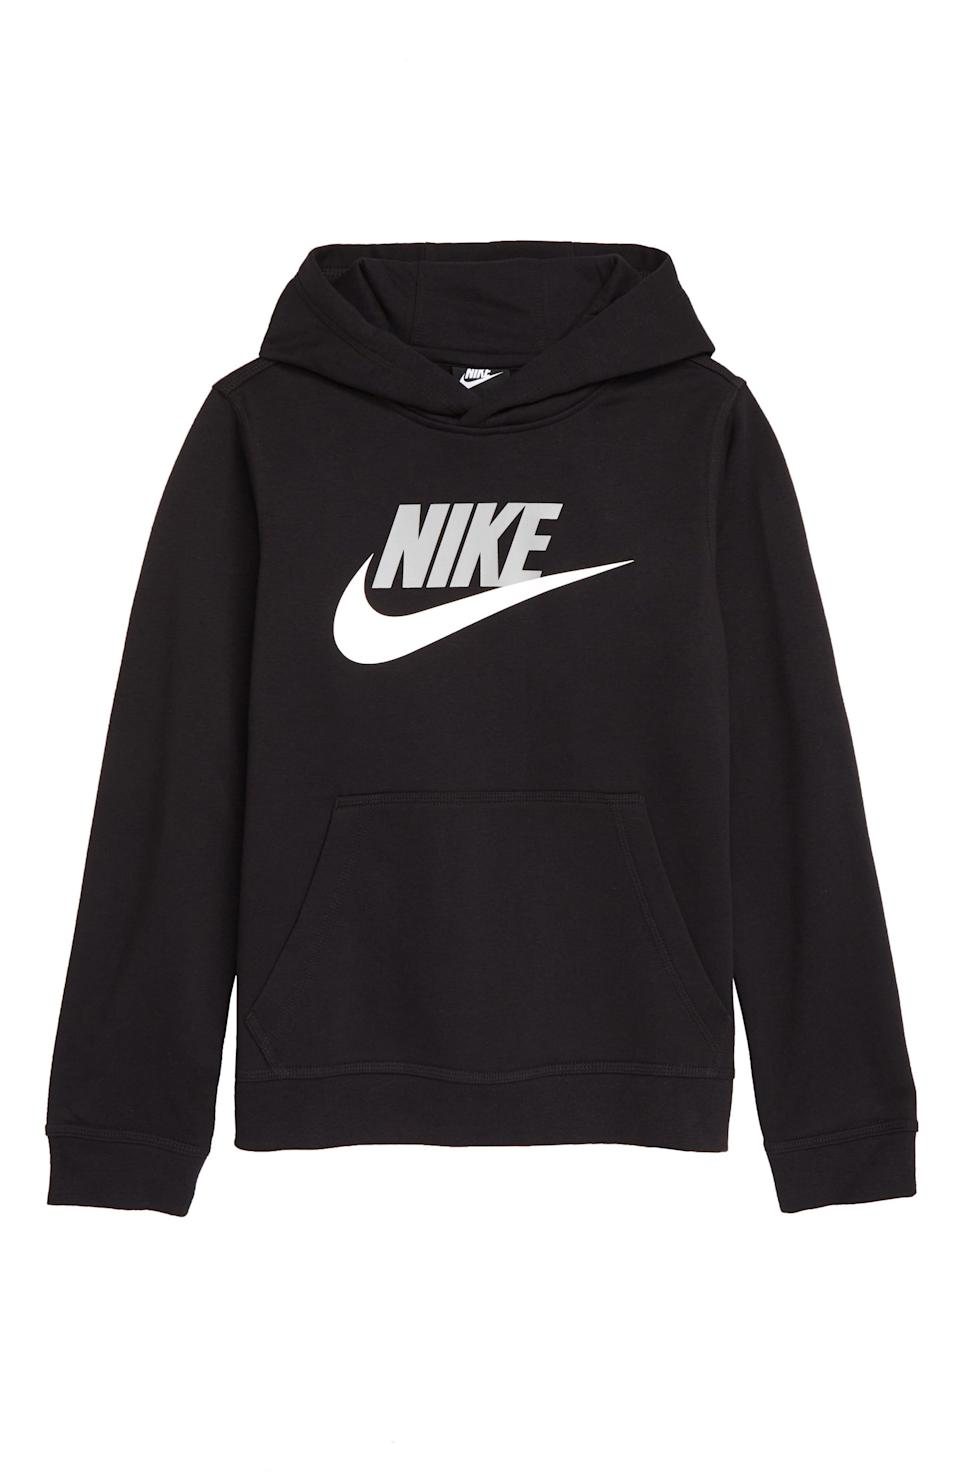 "<p><strong>NIKE</strong></p><p>nordstrom.com</p><p><strong>$33.75</strong></p><p><a href=""https://go.redirectingat.com?id=74968X1596630&url=https%3A%2F%2Fwww.nordstrom.com%2Fs%2Fnike-kids-sportswear-club-fleece-hoodie-little-boy-big-boy%2F5829023&sref=https%3A%2F%2Fwww.redbookmag.com%2Flife%2Fg34811477%2Fblack-friday-cyber-monday-baby-deals-2020%2F"" rel=""nofollow noopener"" target=""_blank"" data-ylk=""slk:Shop Now"" class=""link rapid-noclick-resp"">Shop Now</a></p><p>For the little who likes streetwear.</p>"